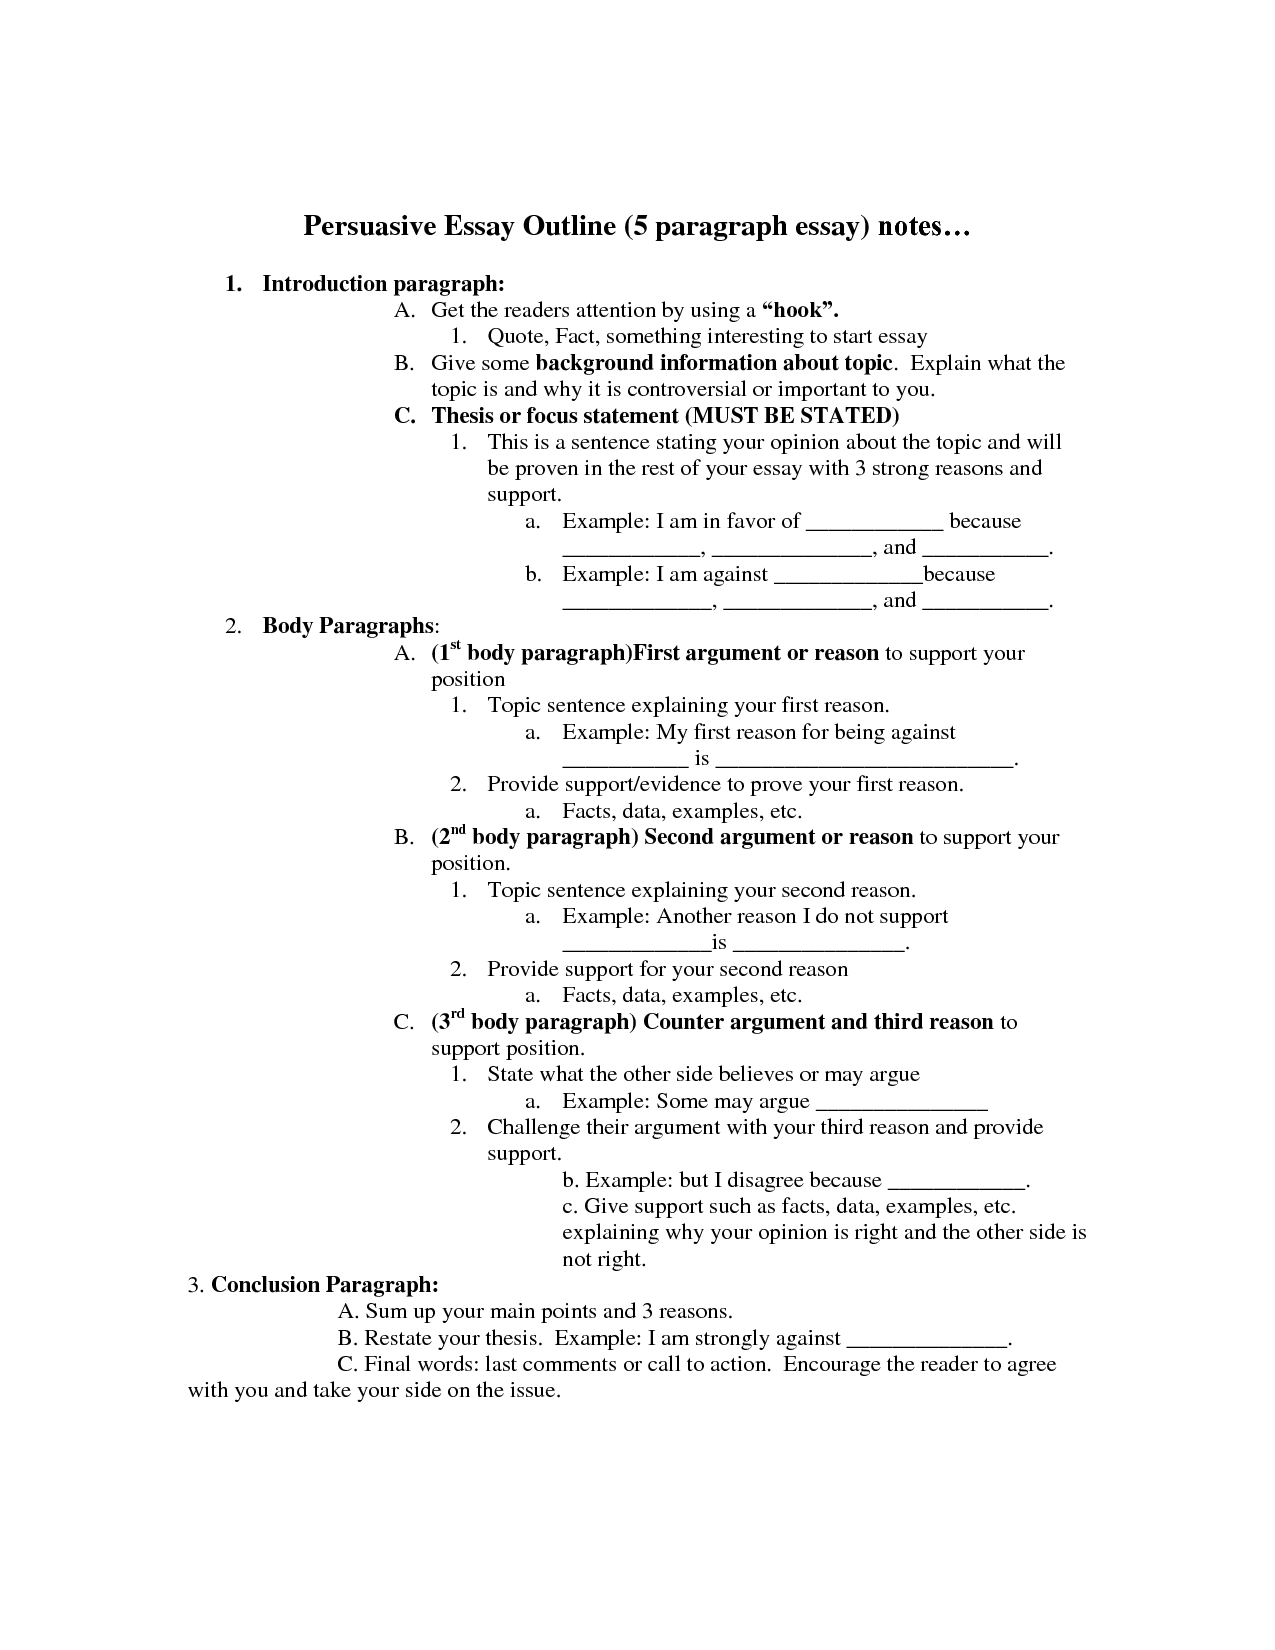 005 Essay Example Paragraph Persuasive Outline 473160 Argumentative Phenomenal Research Structure Medical Topics Full